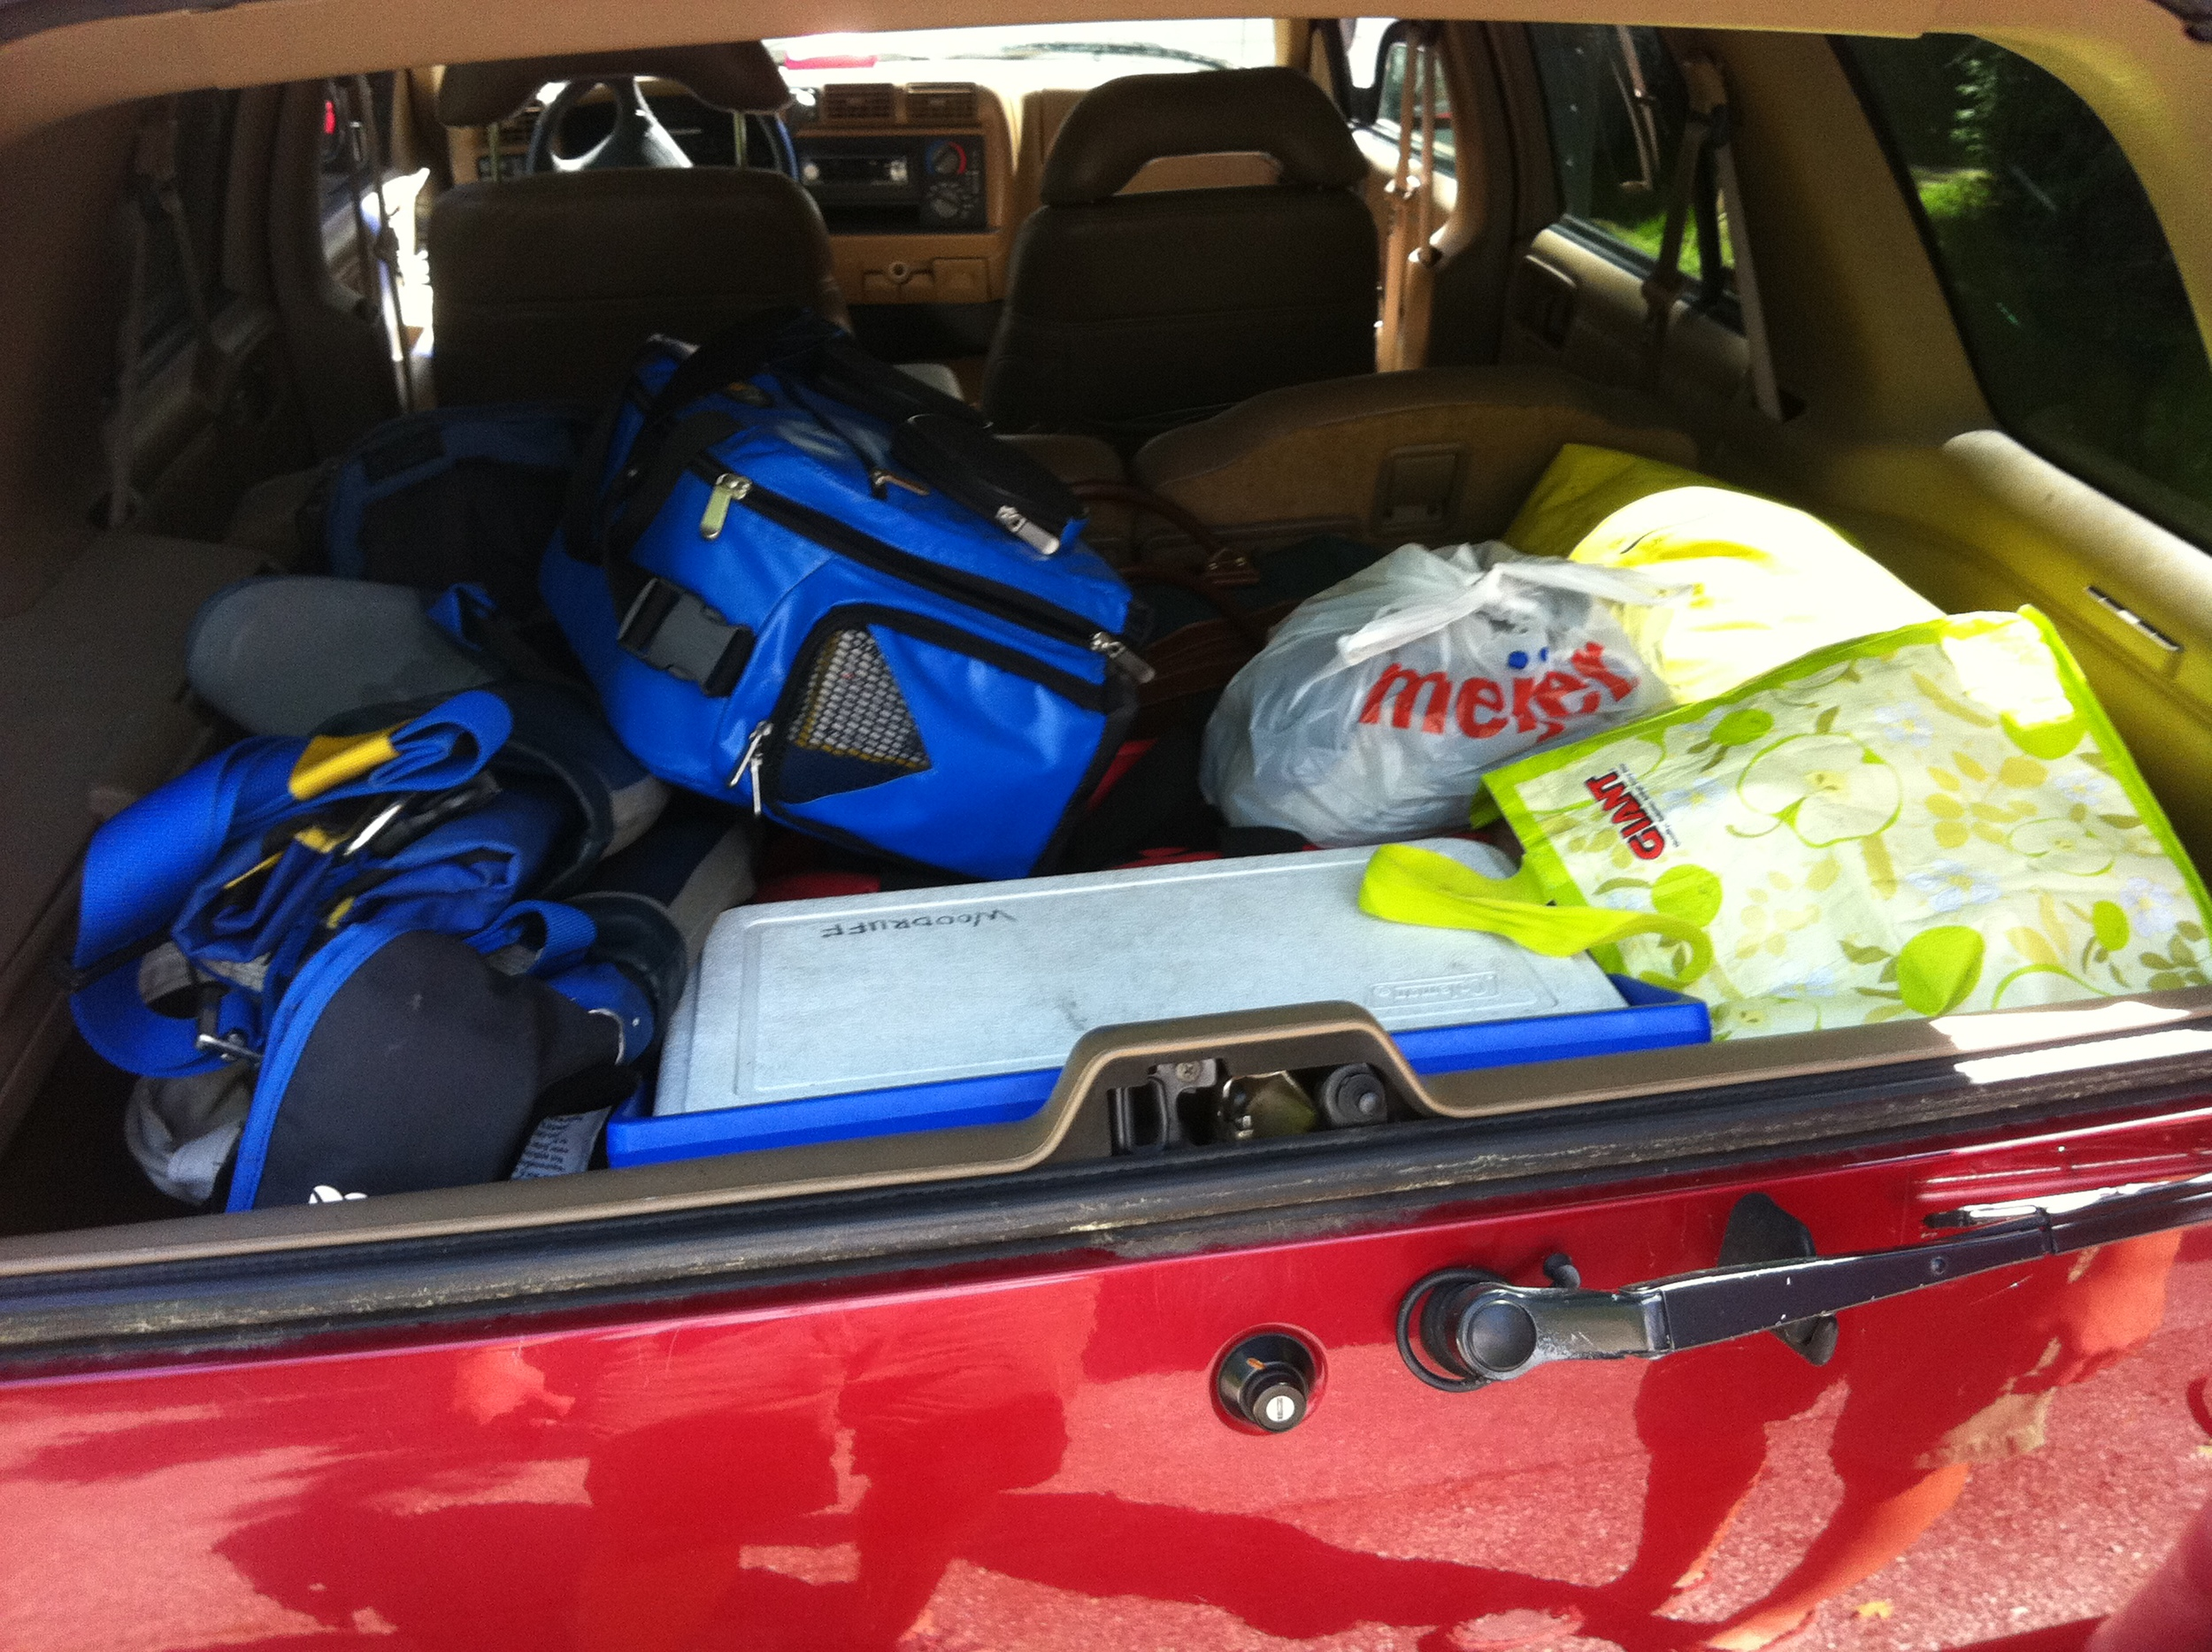 Gear packed up for a lift south.